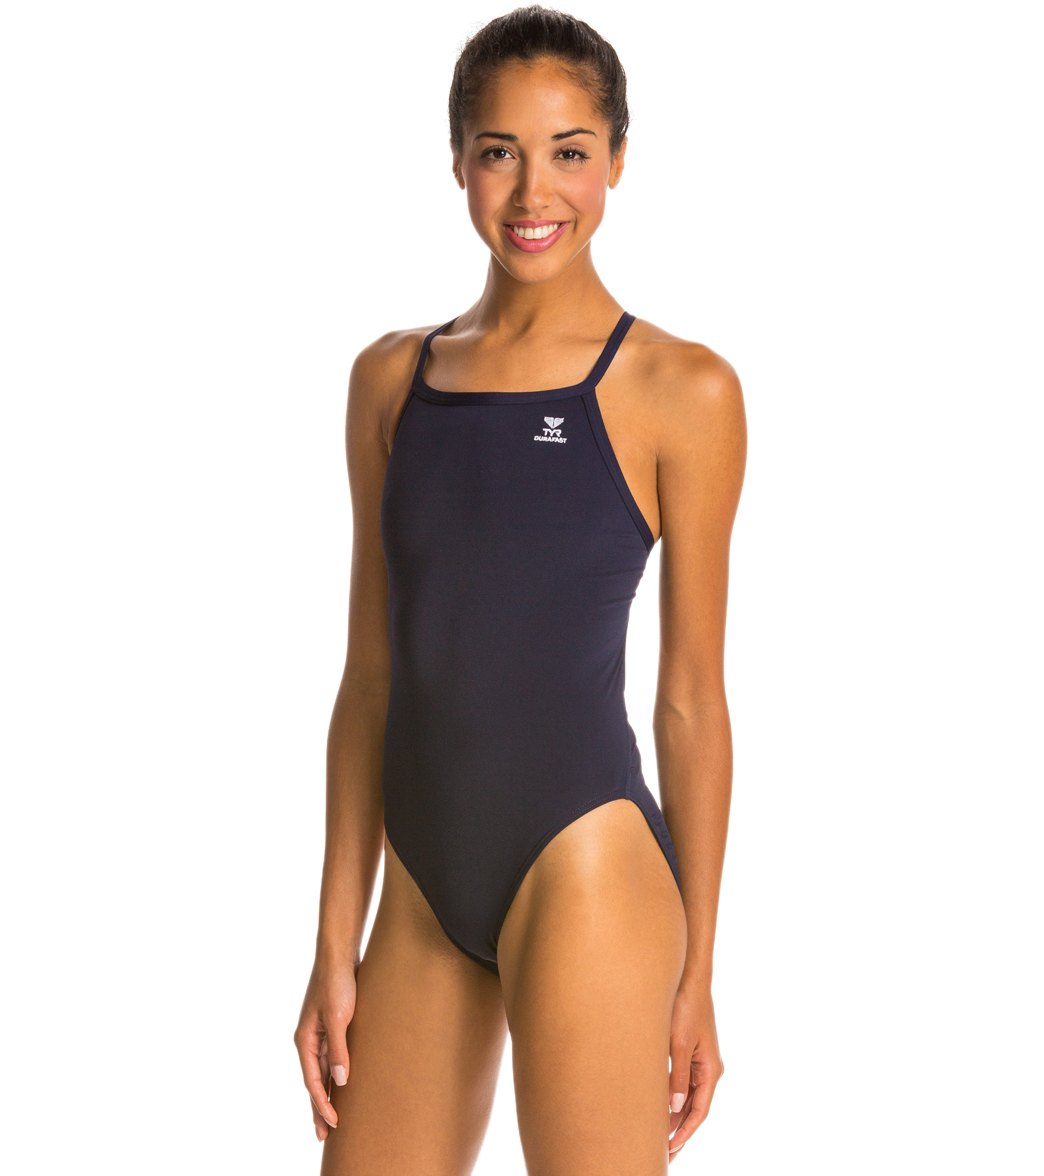 7b4b610196848 TYR Durafast Solid Diamondfit One Piece Swimsuit at SwimOutlet.com ...